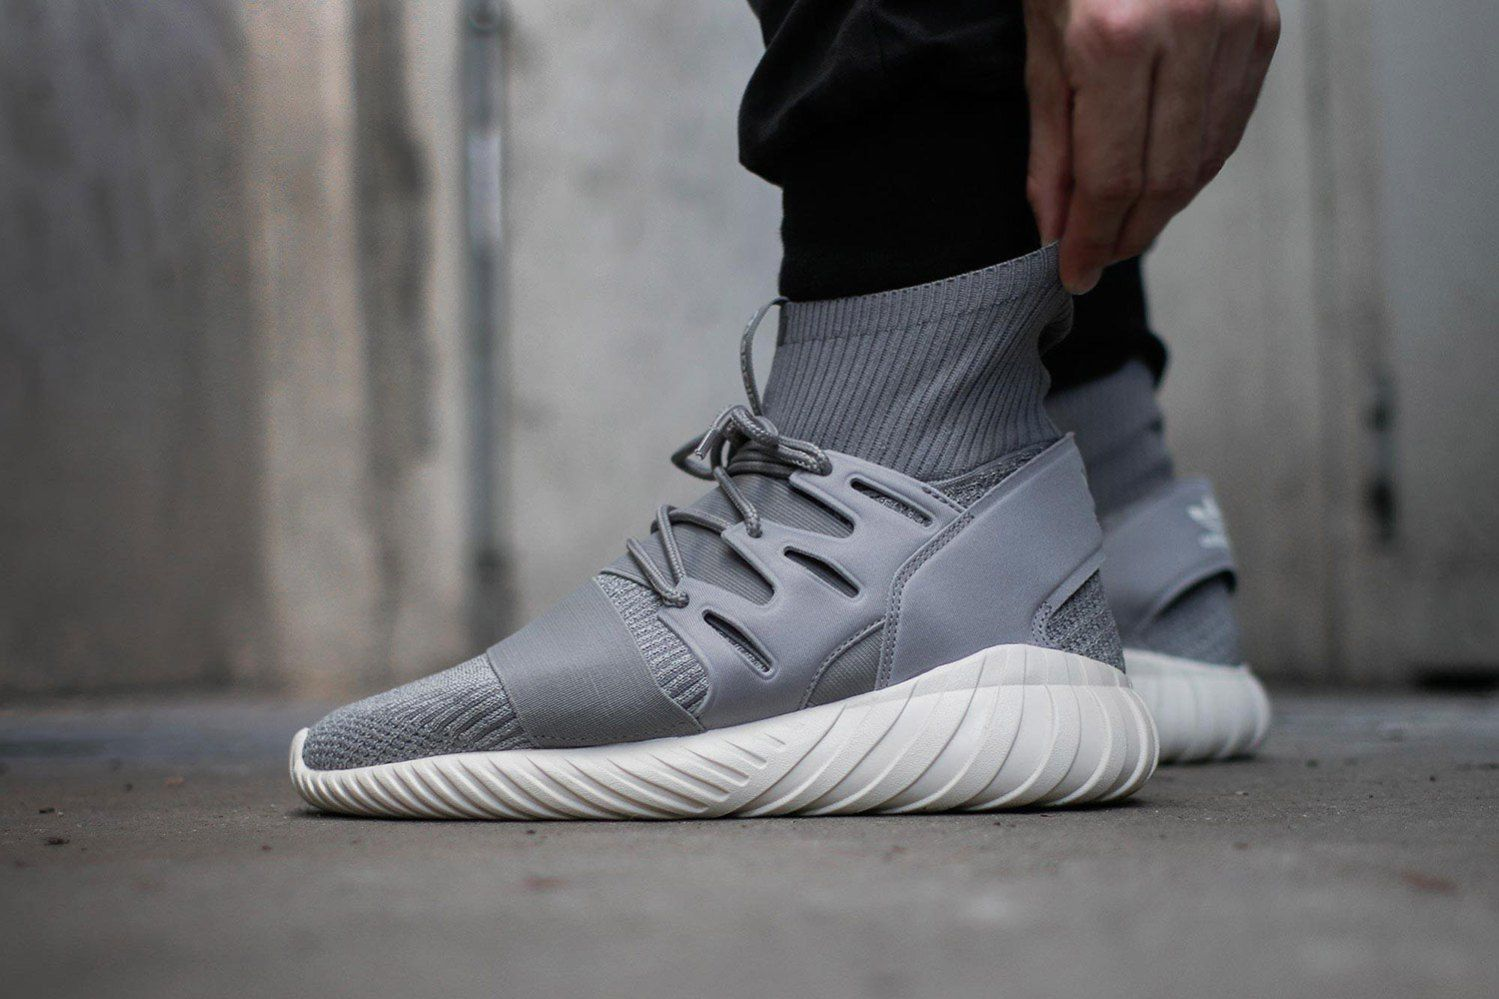 A Closer Look At The Adidas Originals Tubular Doom Primeknit